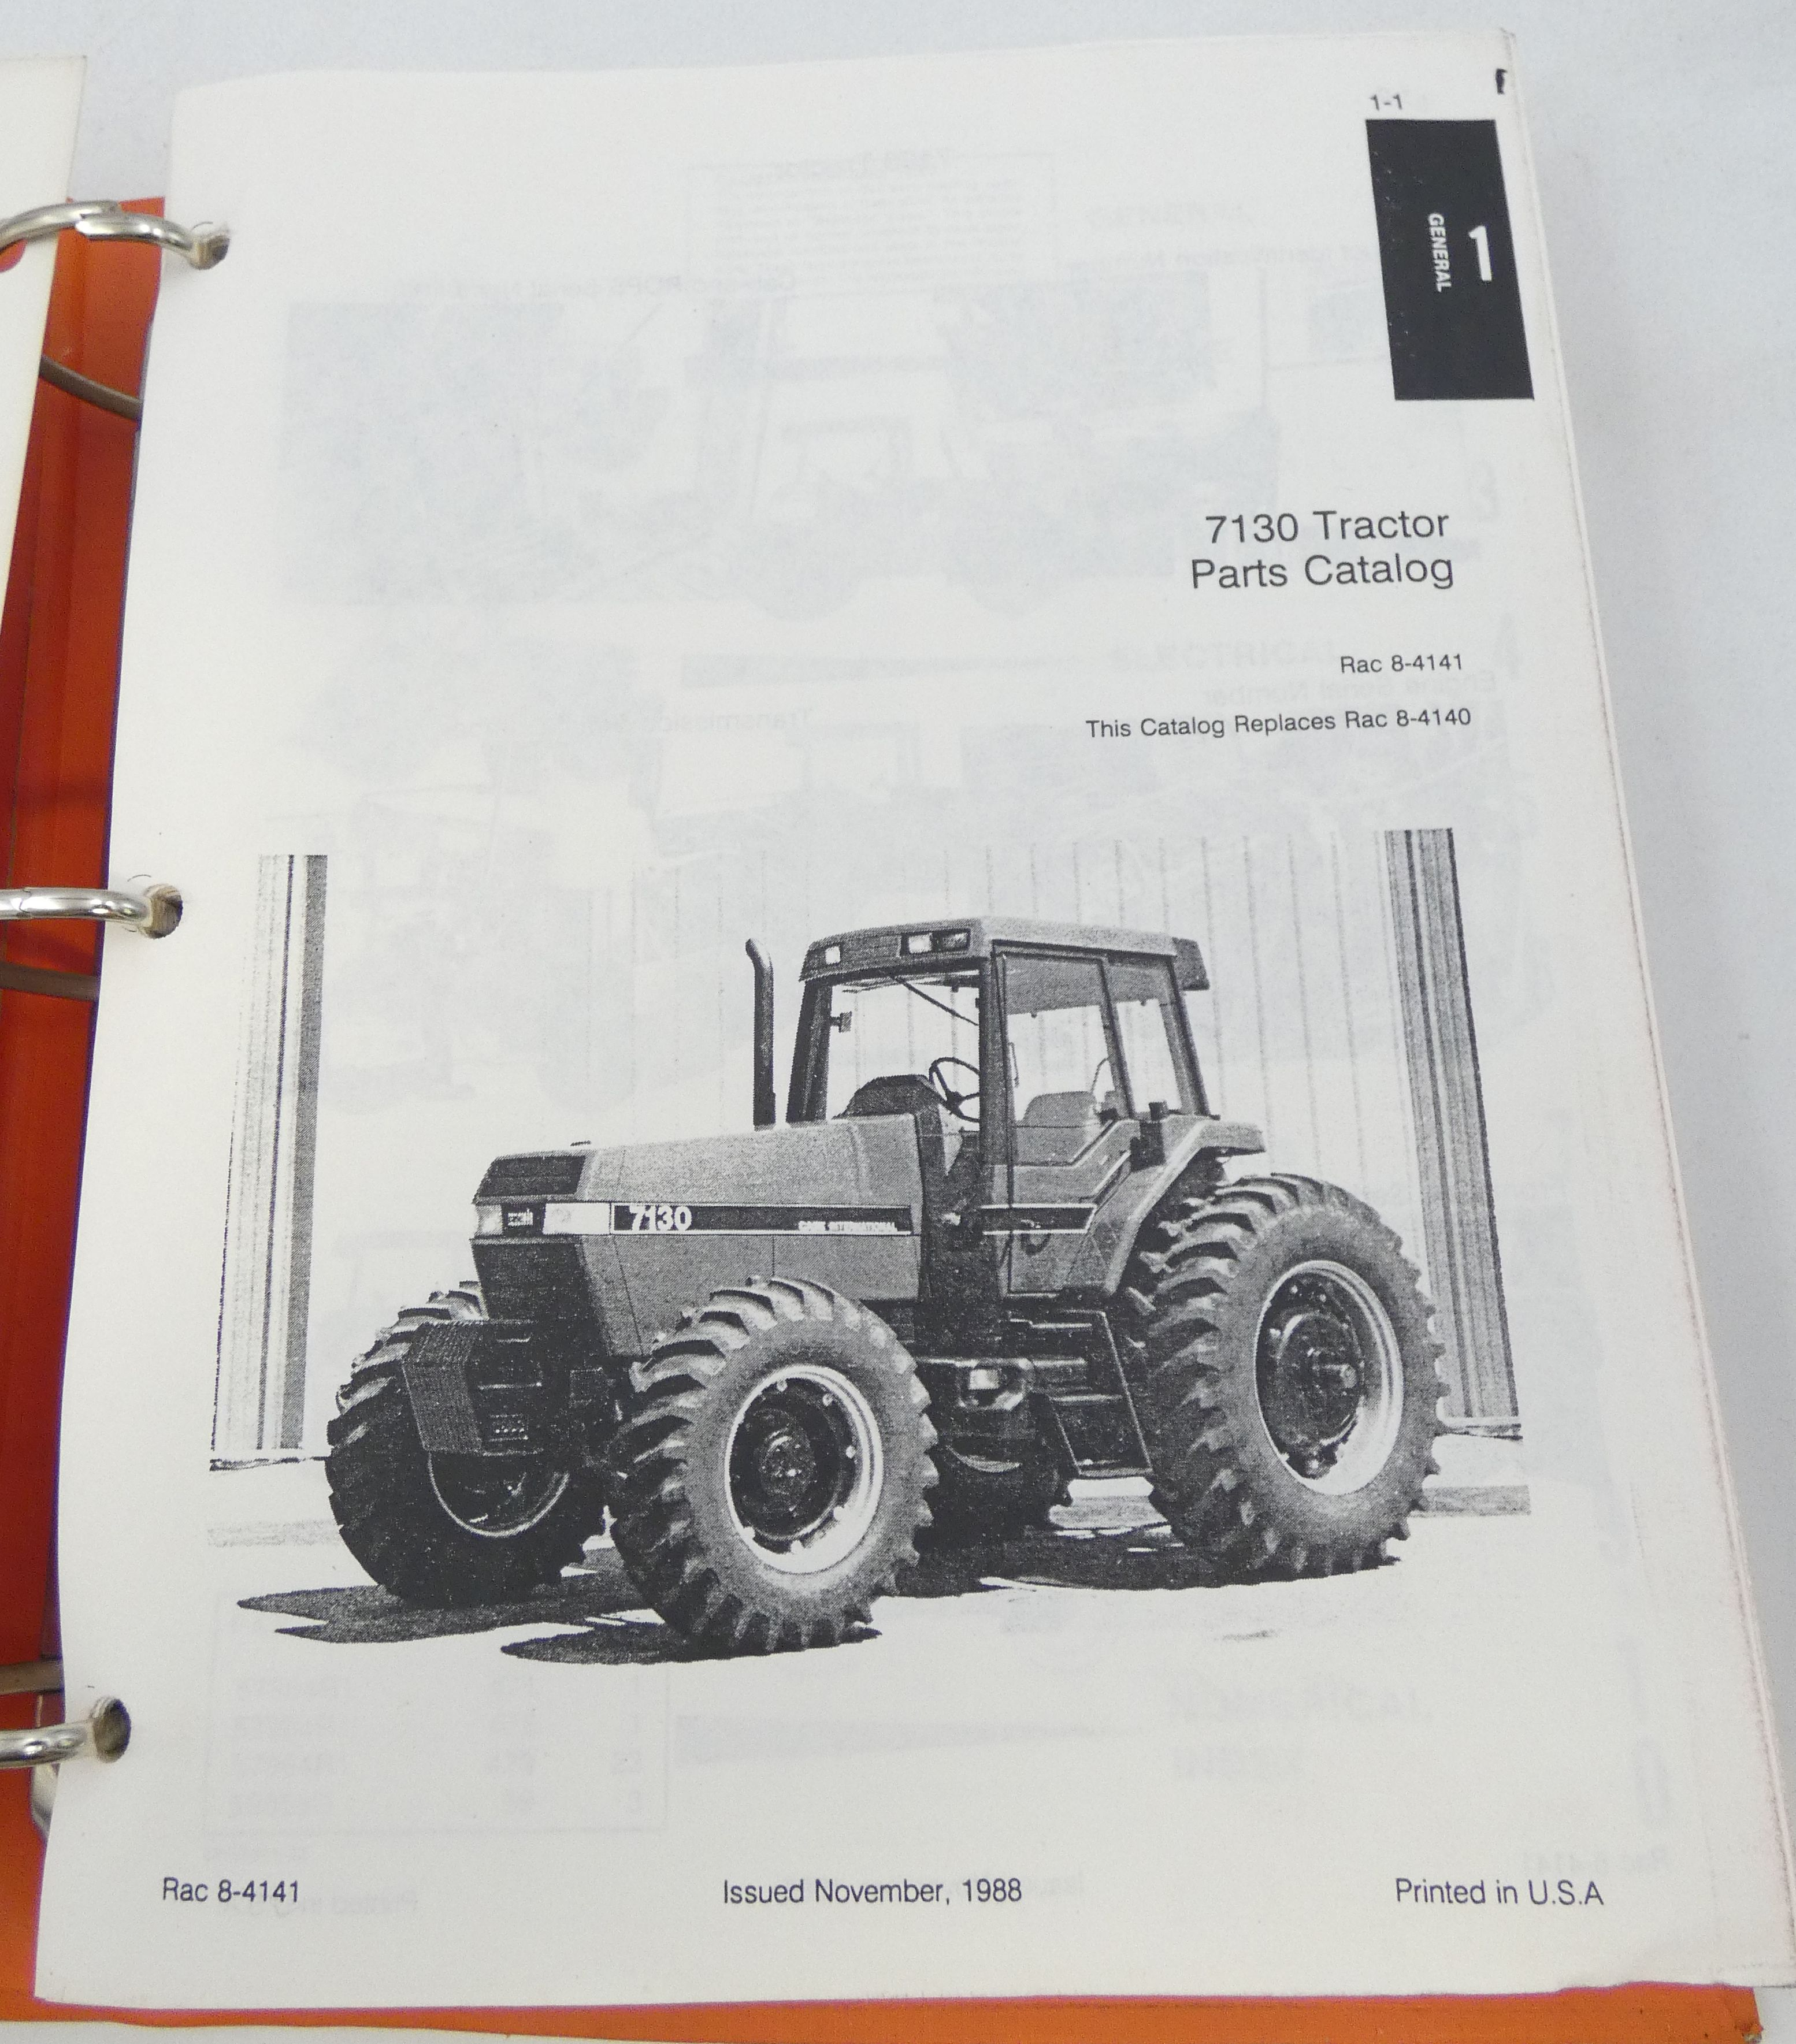 Case International 7130 tractor parts catalog